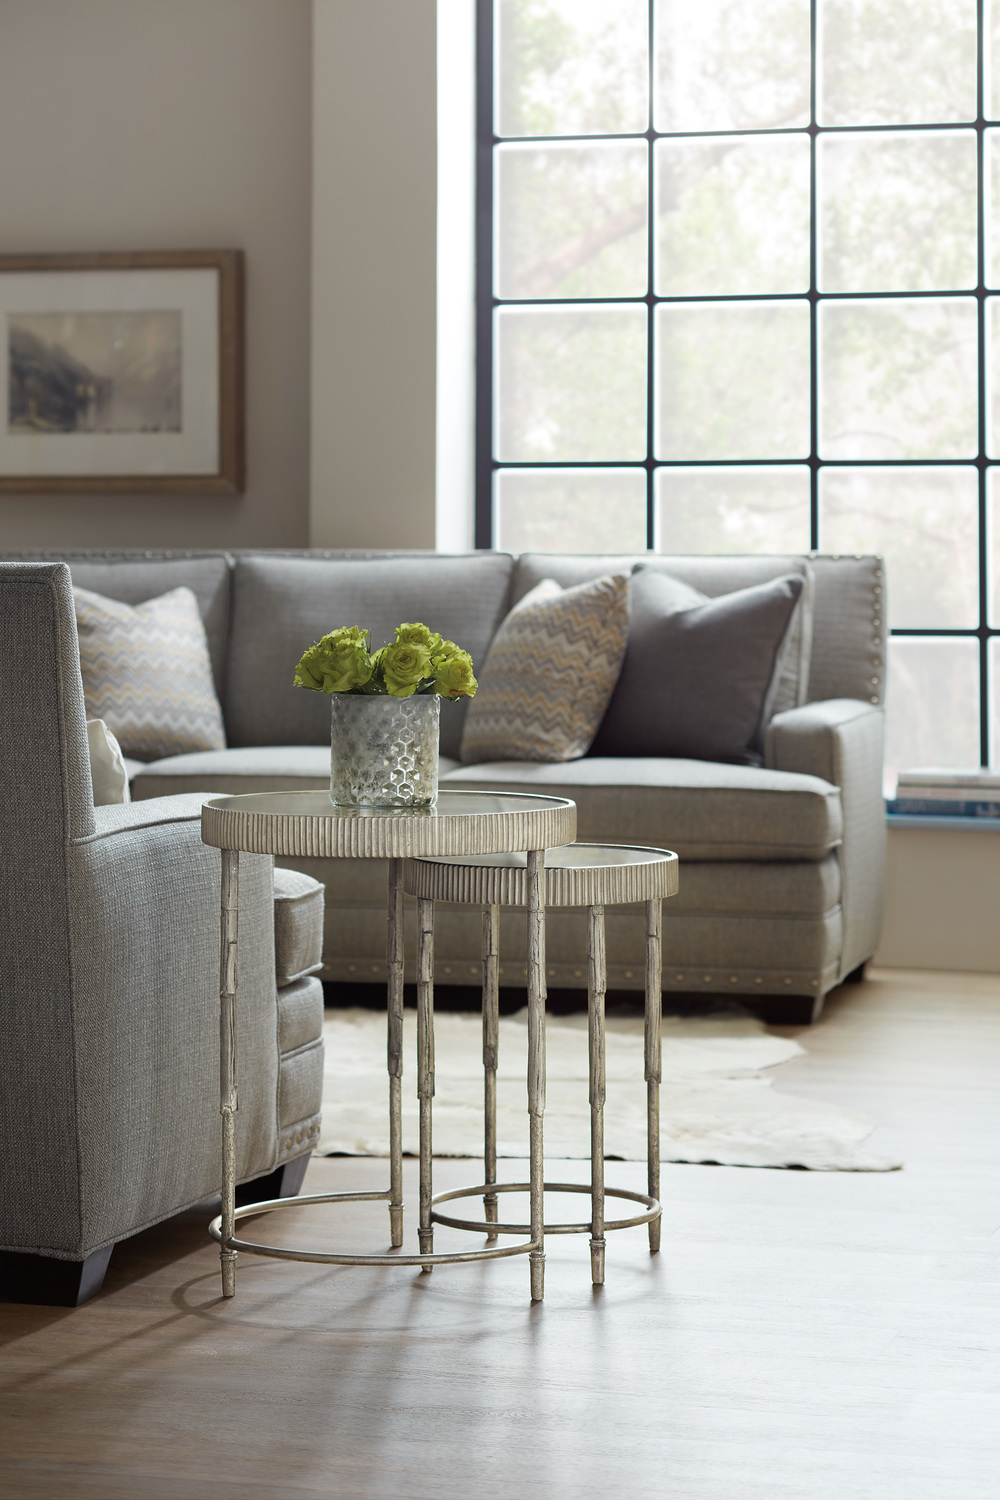 Hooker Furniture - Accent Nesting Tables